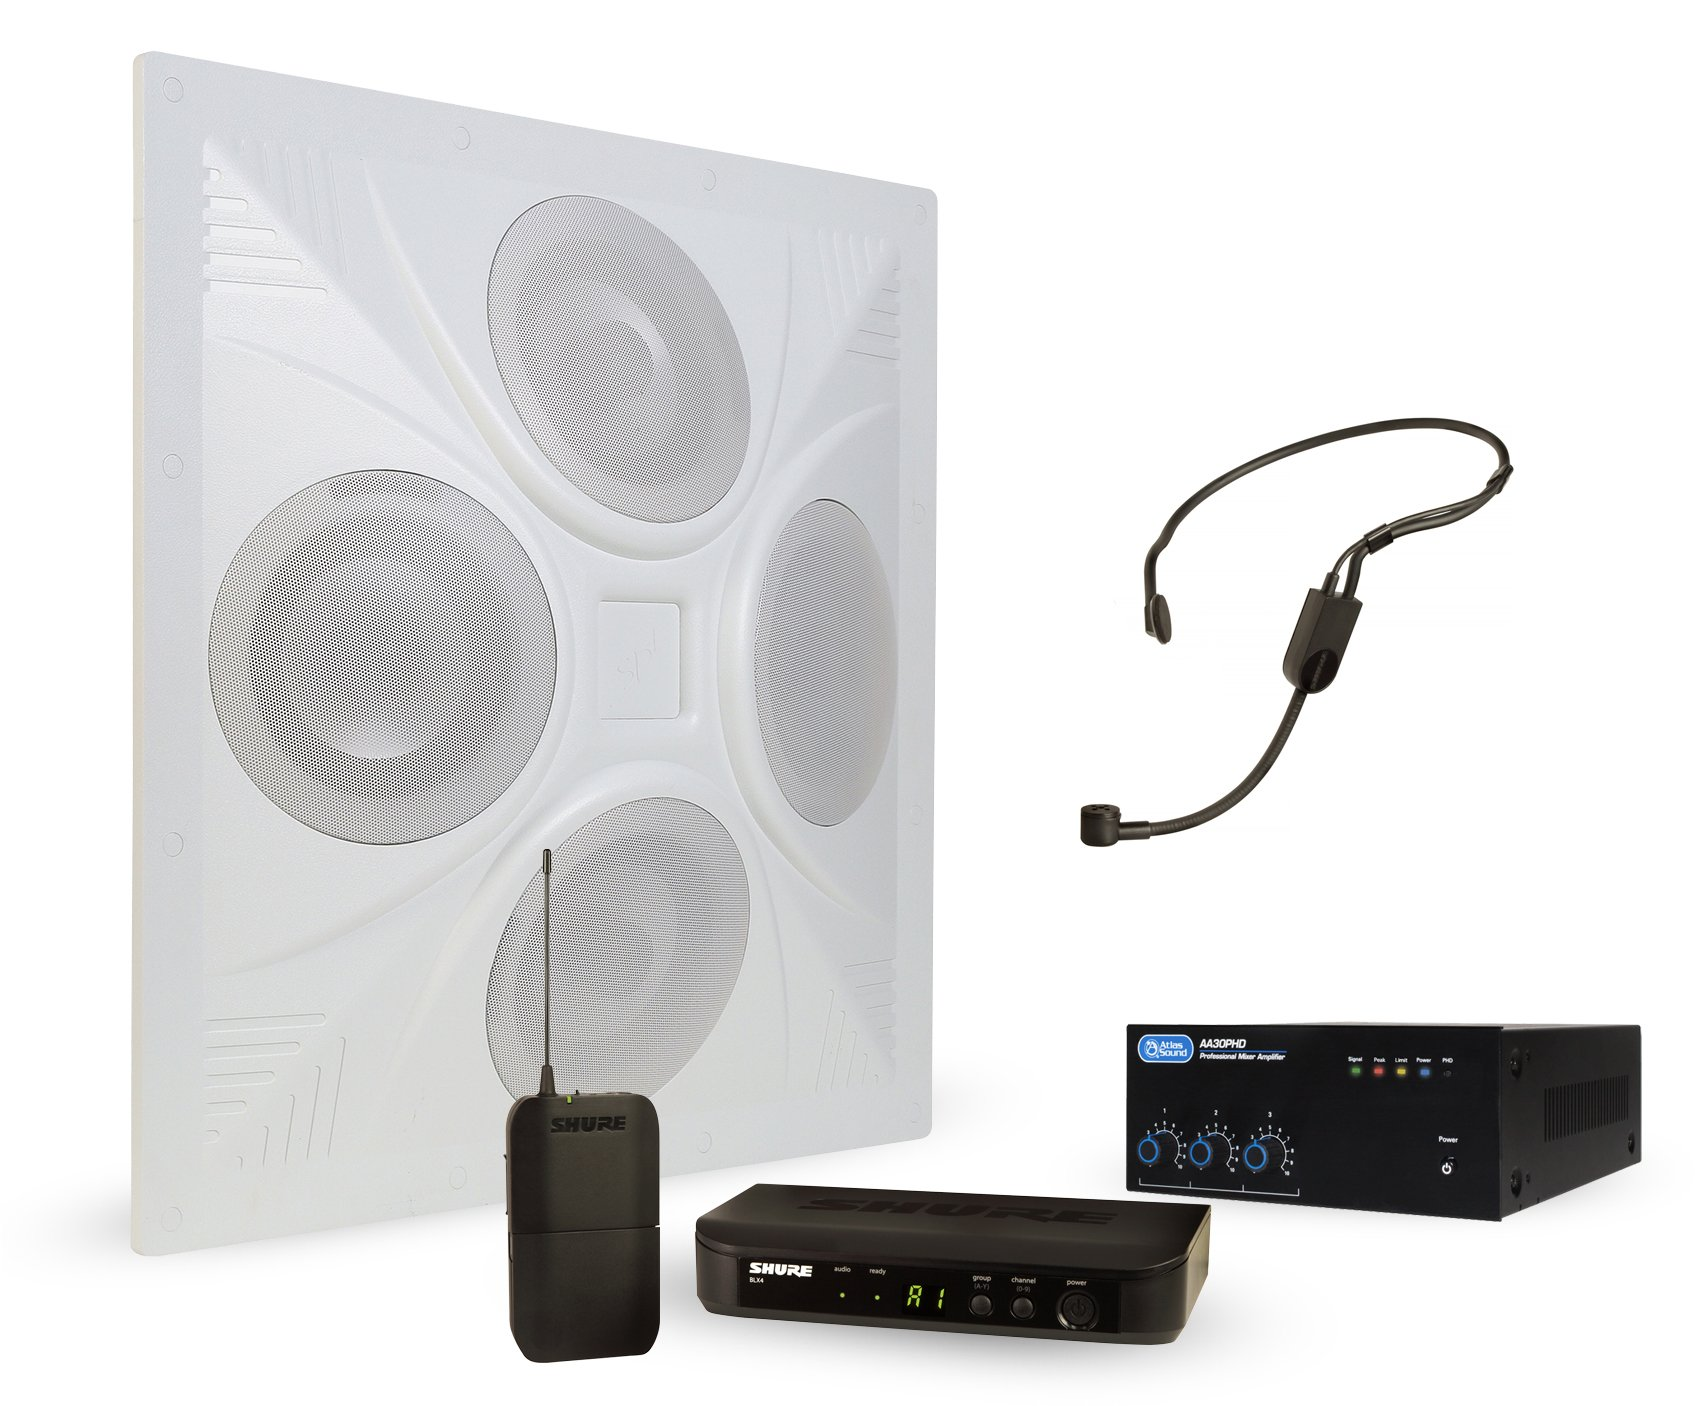 Wireless Conference Room Sound System 1 Ceiling Speaker, Mixer Amplifier, Shure Headset Mic Wireless System